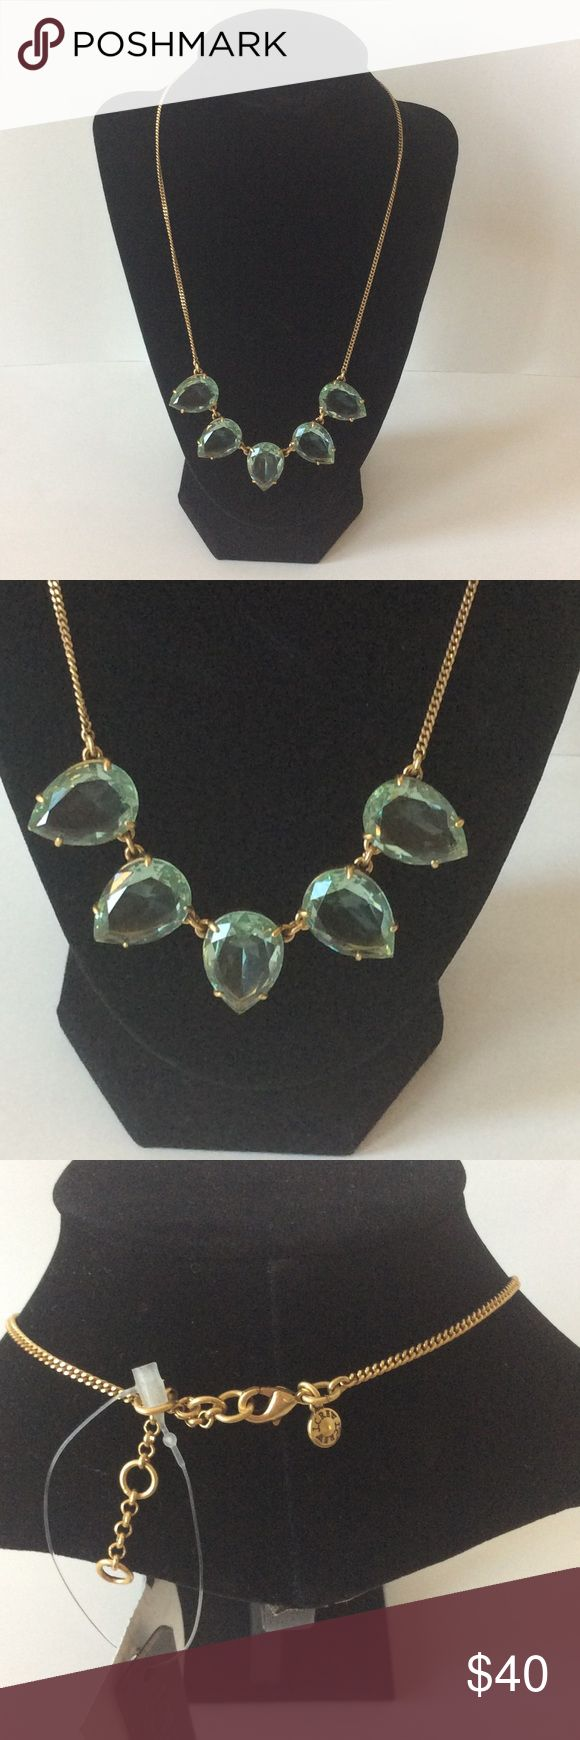 "J. Crew Teardrop Crystal Necklace J. Crew Teardrop Crystal Necklace. Gorgeous  polished crystal necklace in a blue green color. Brass chain and casting, epoxy stone, logo tag with cubic zirconia. Length is approx 19 1/2"" with 2 3/8"" extender chain for adjustable length. NWT, never worn. #633 J. Crew Jewelry Necklaces"